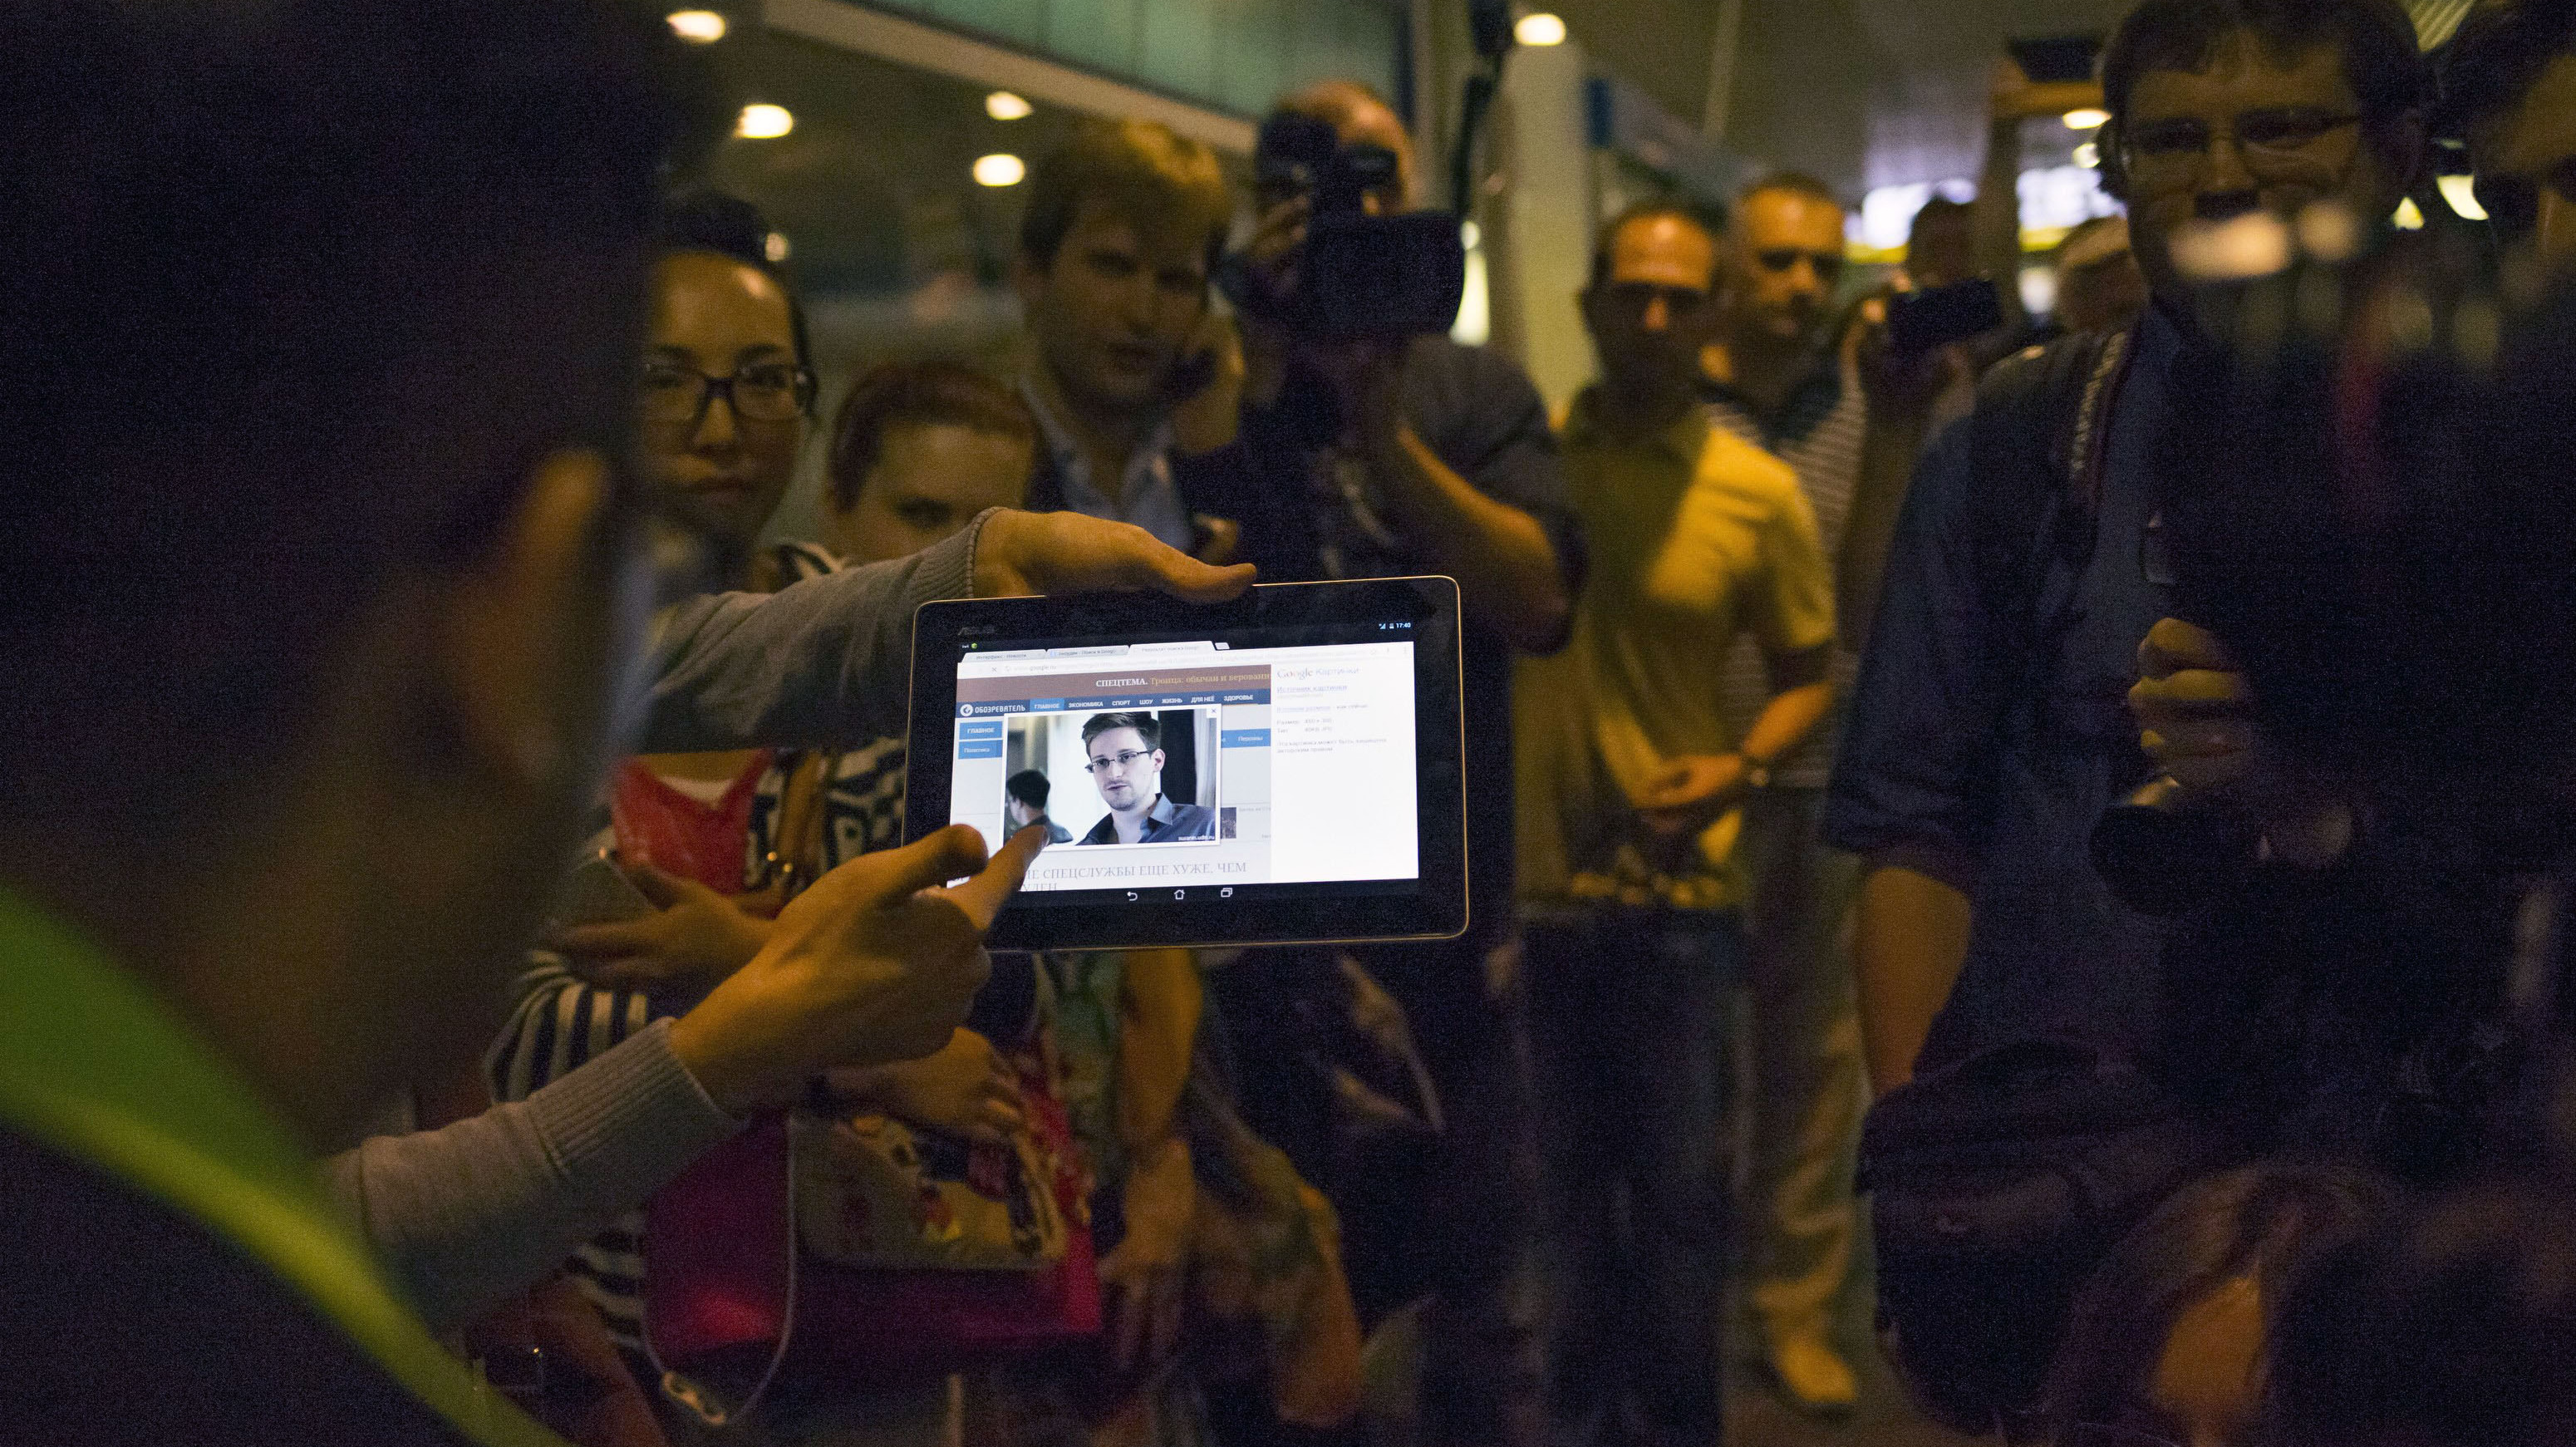 The U.S. Wants Snowden. Why Won't The World Cooperate?